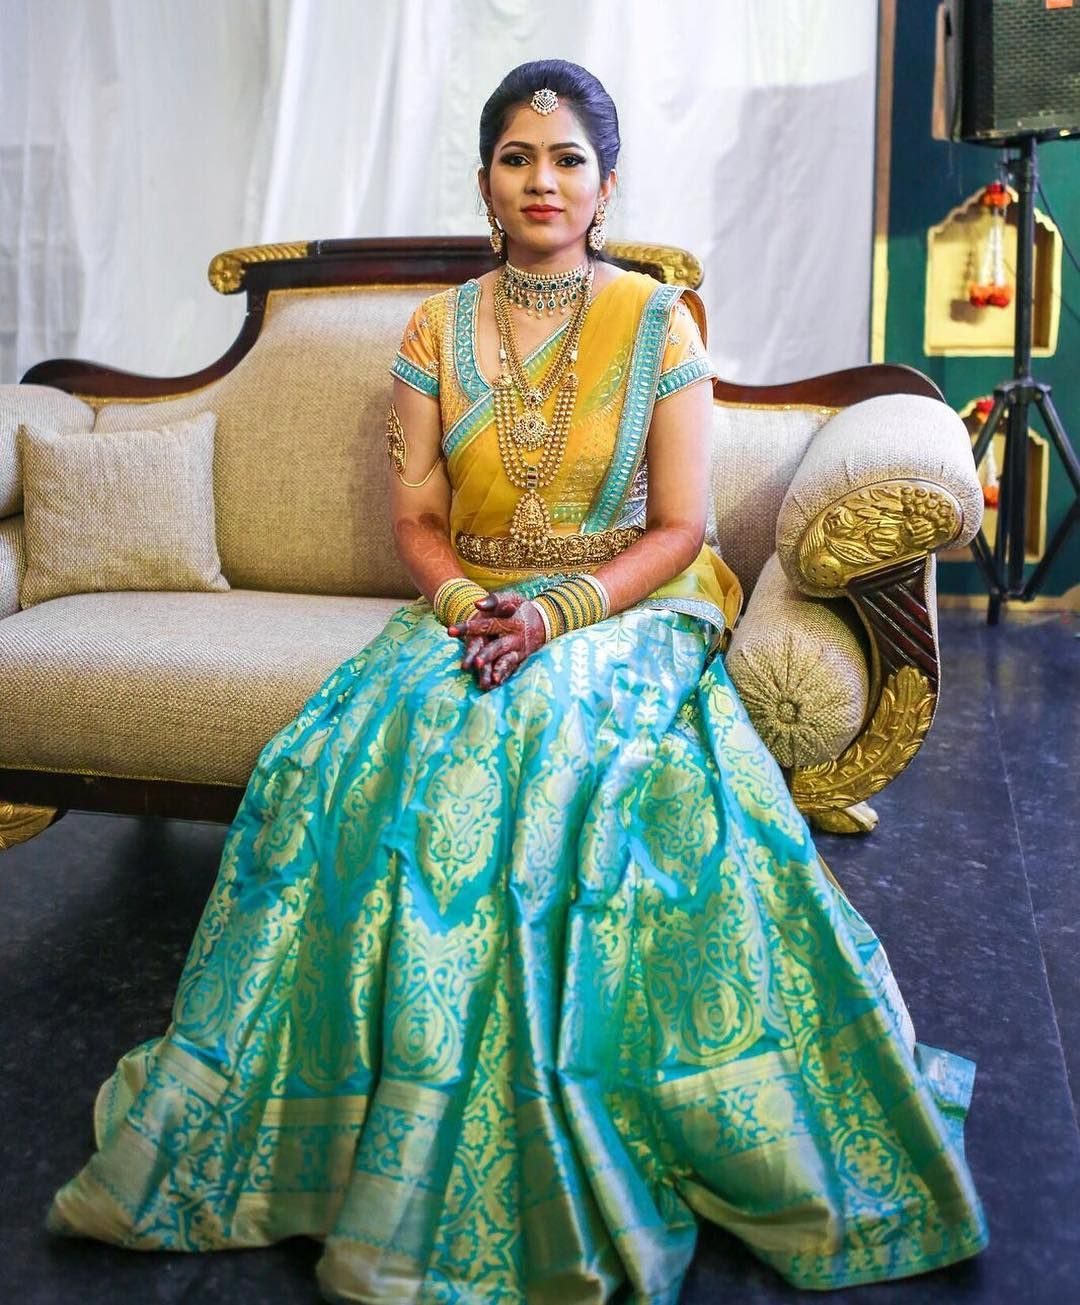 Pin by Akshaya Reddy on Bridal looks | Pinterest | Traditional, Half ...